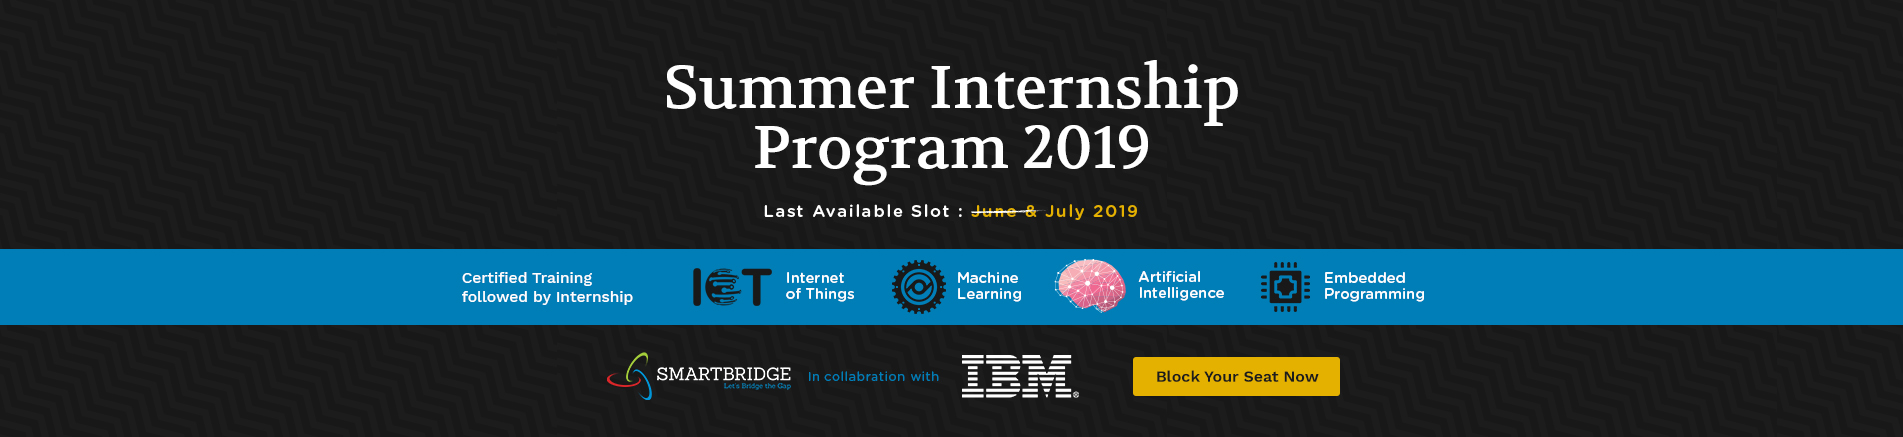 Summer Internship Program - 2019. Certified Training followed by Internship.